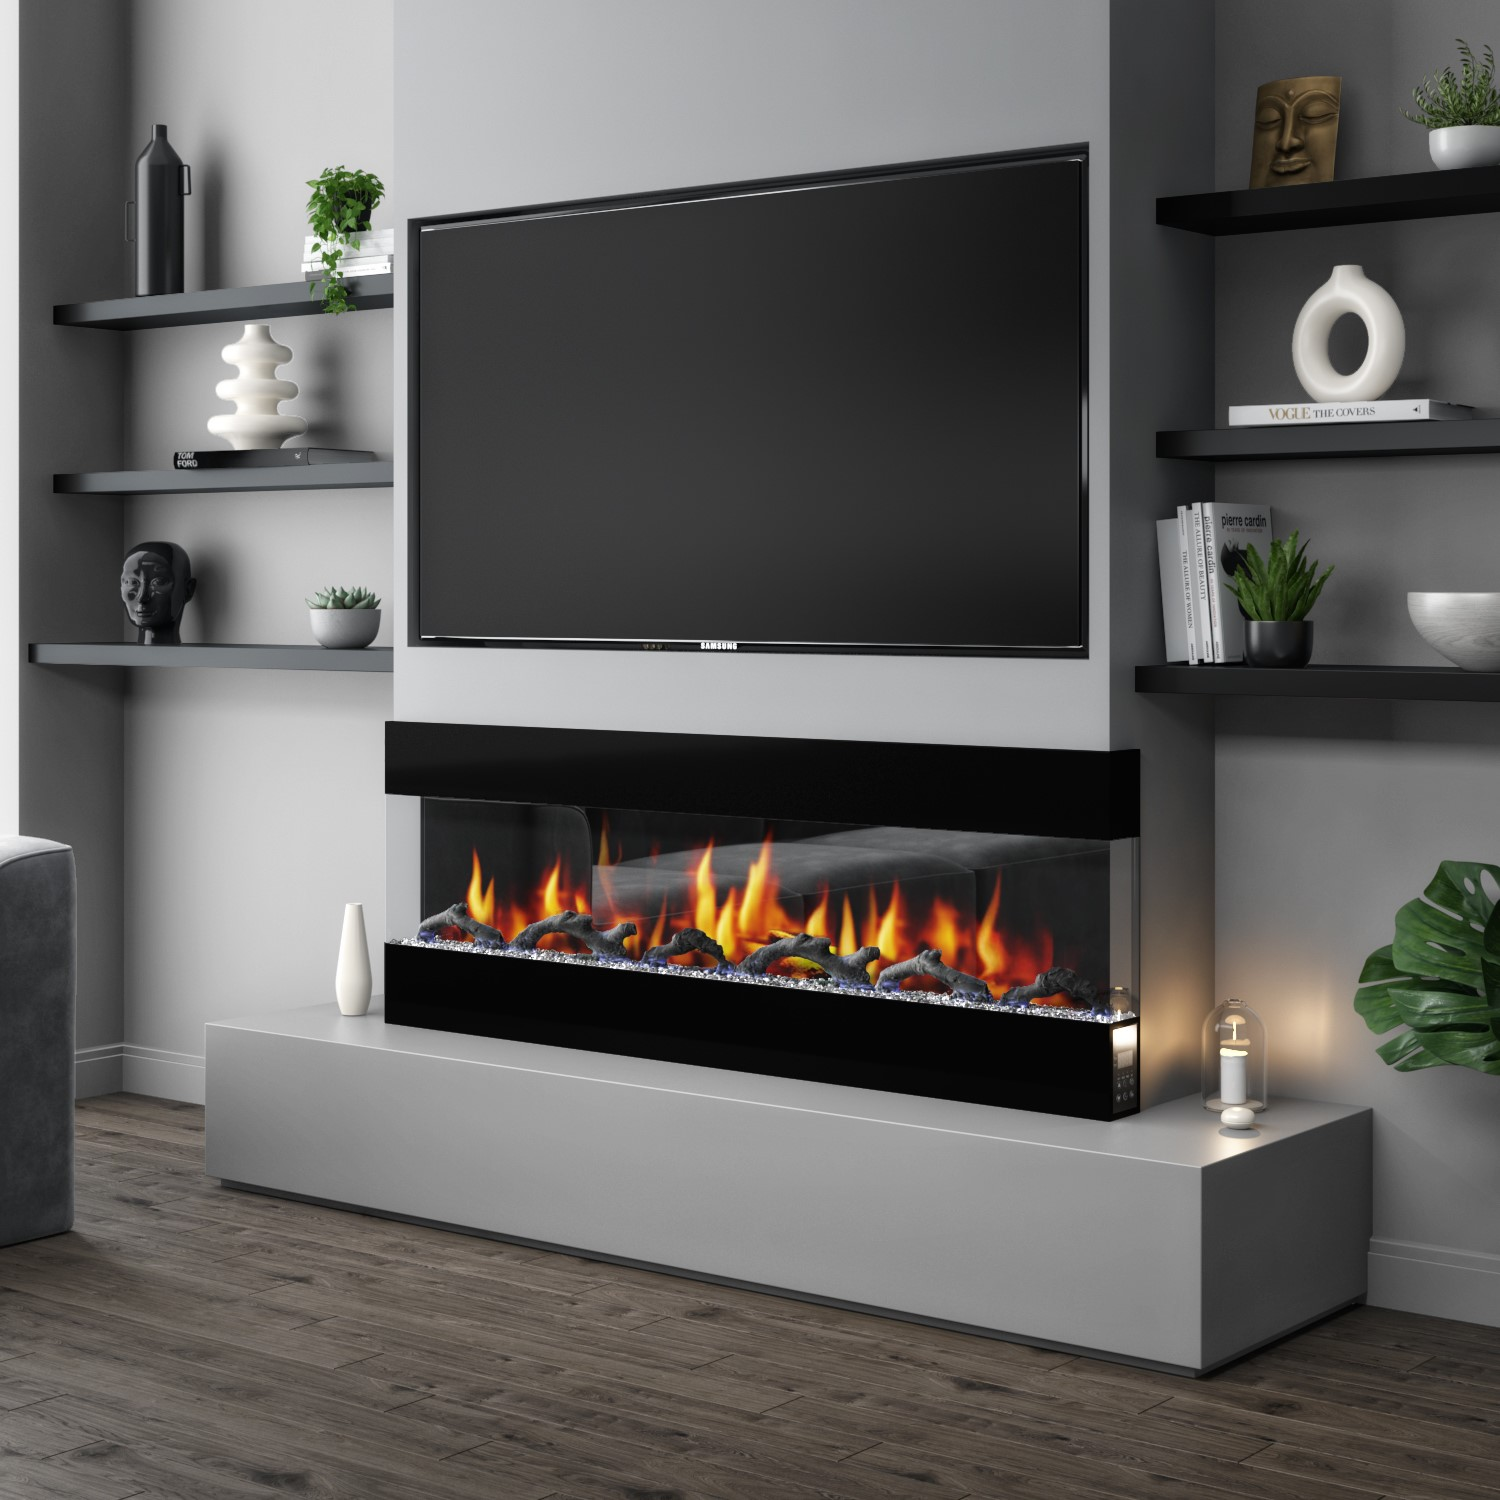 20 Inch Electric Wall Mounted Fire in Black   Amberglo